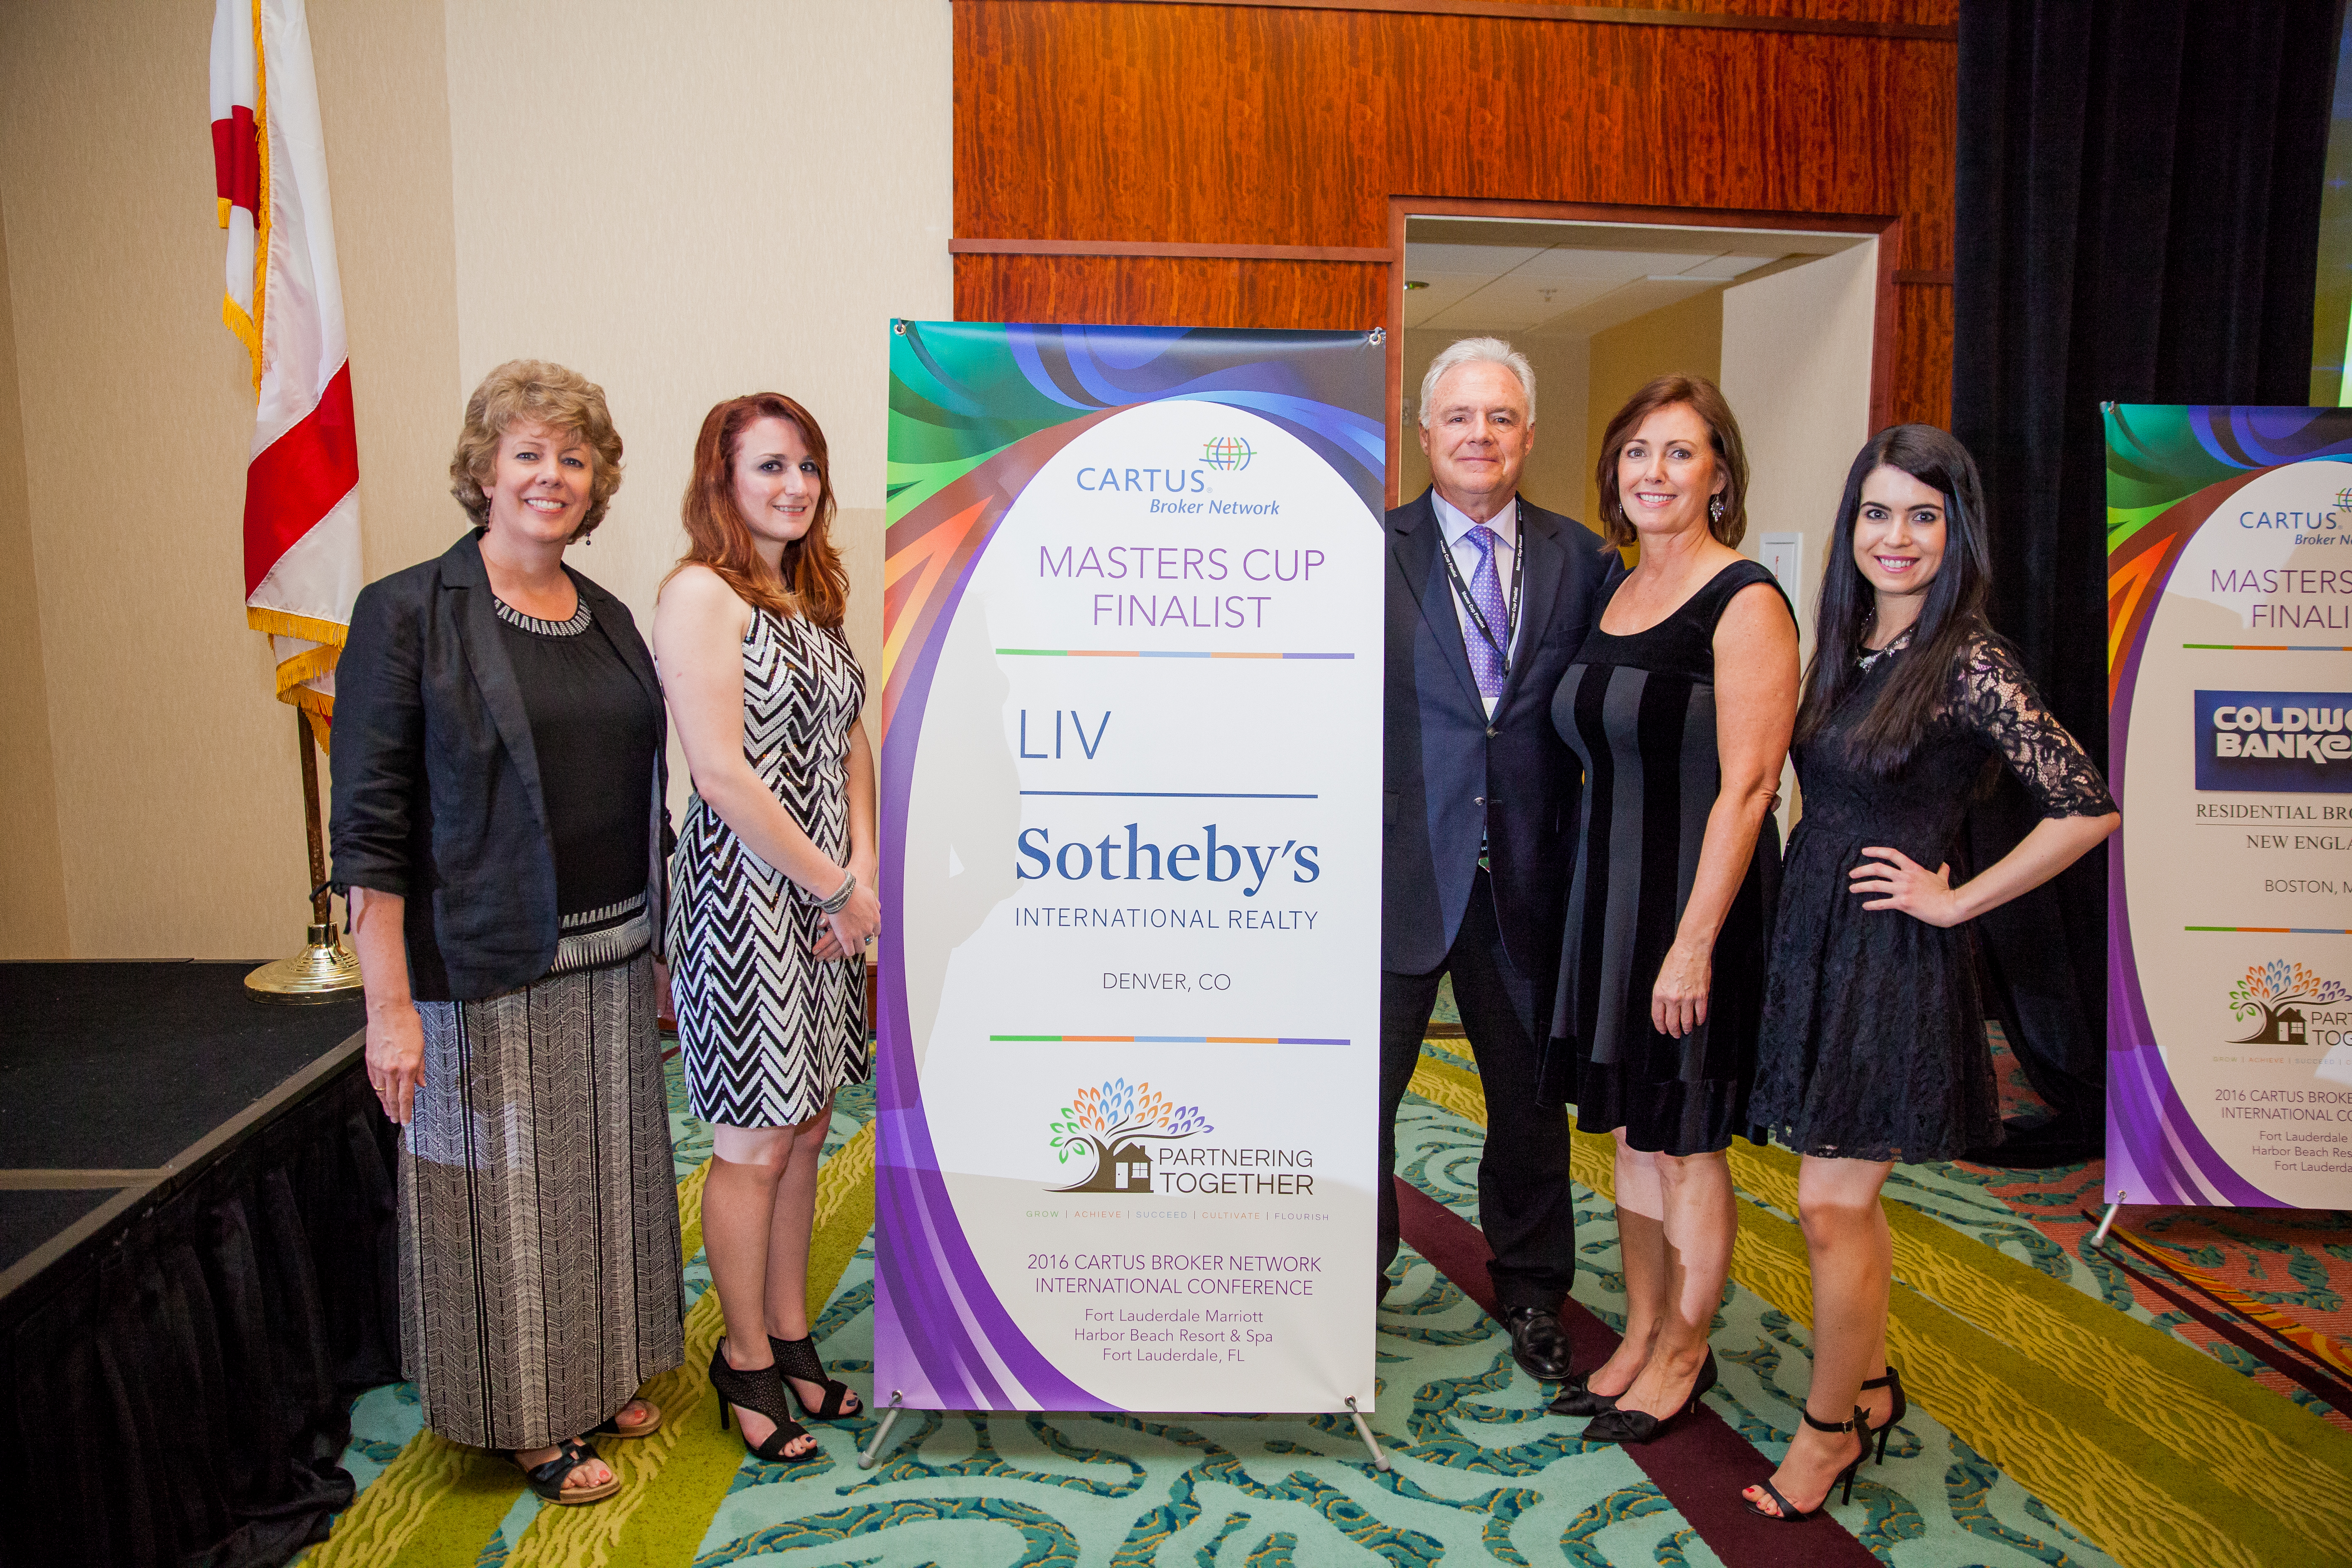 Pictured: LIV Sotheby's International Realty Relocation team, and President, Scott Webber.